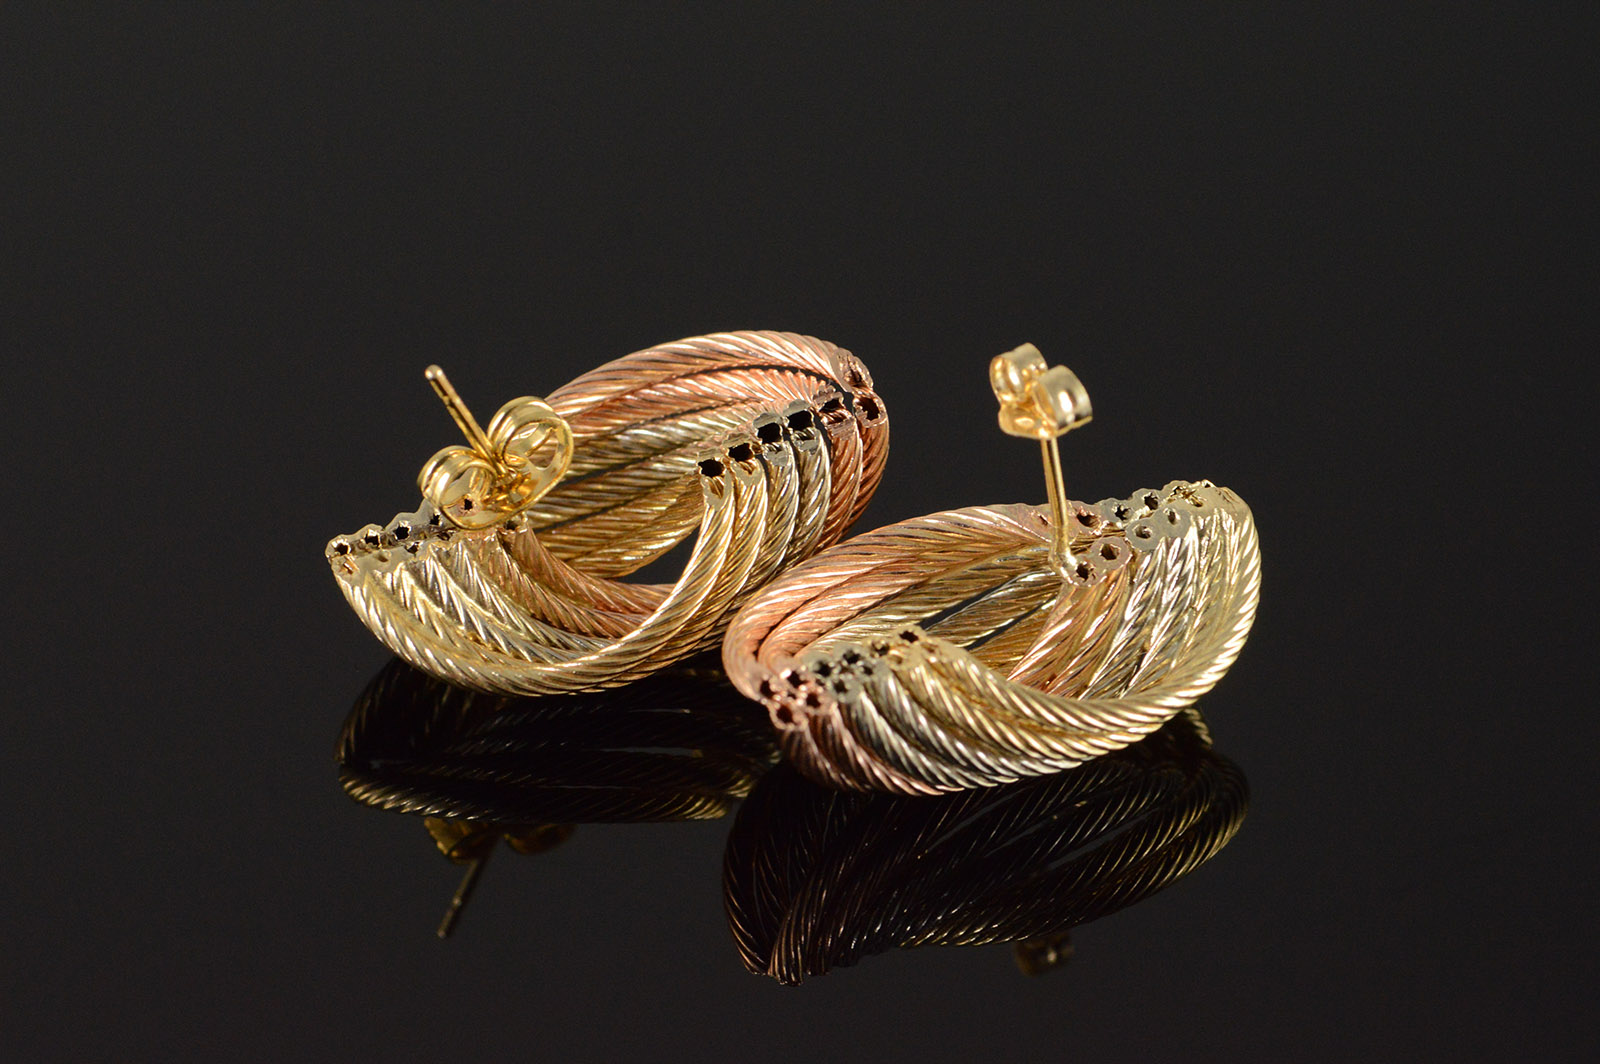 14k 5 9g Knot Twist Rope Tri Color Stud Yellow Gold Earrings